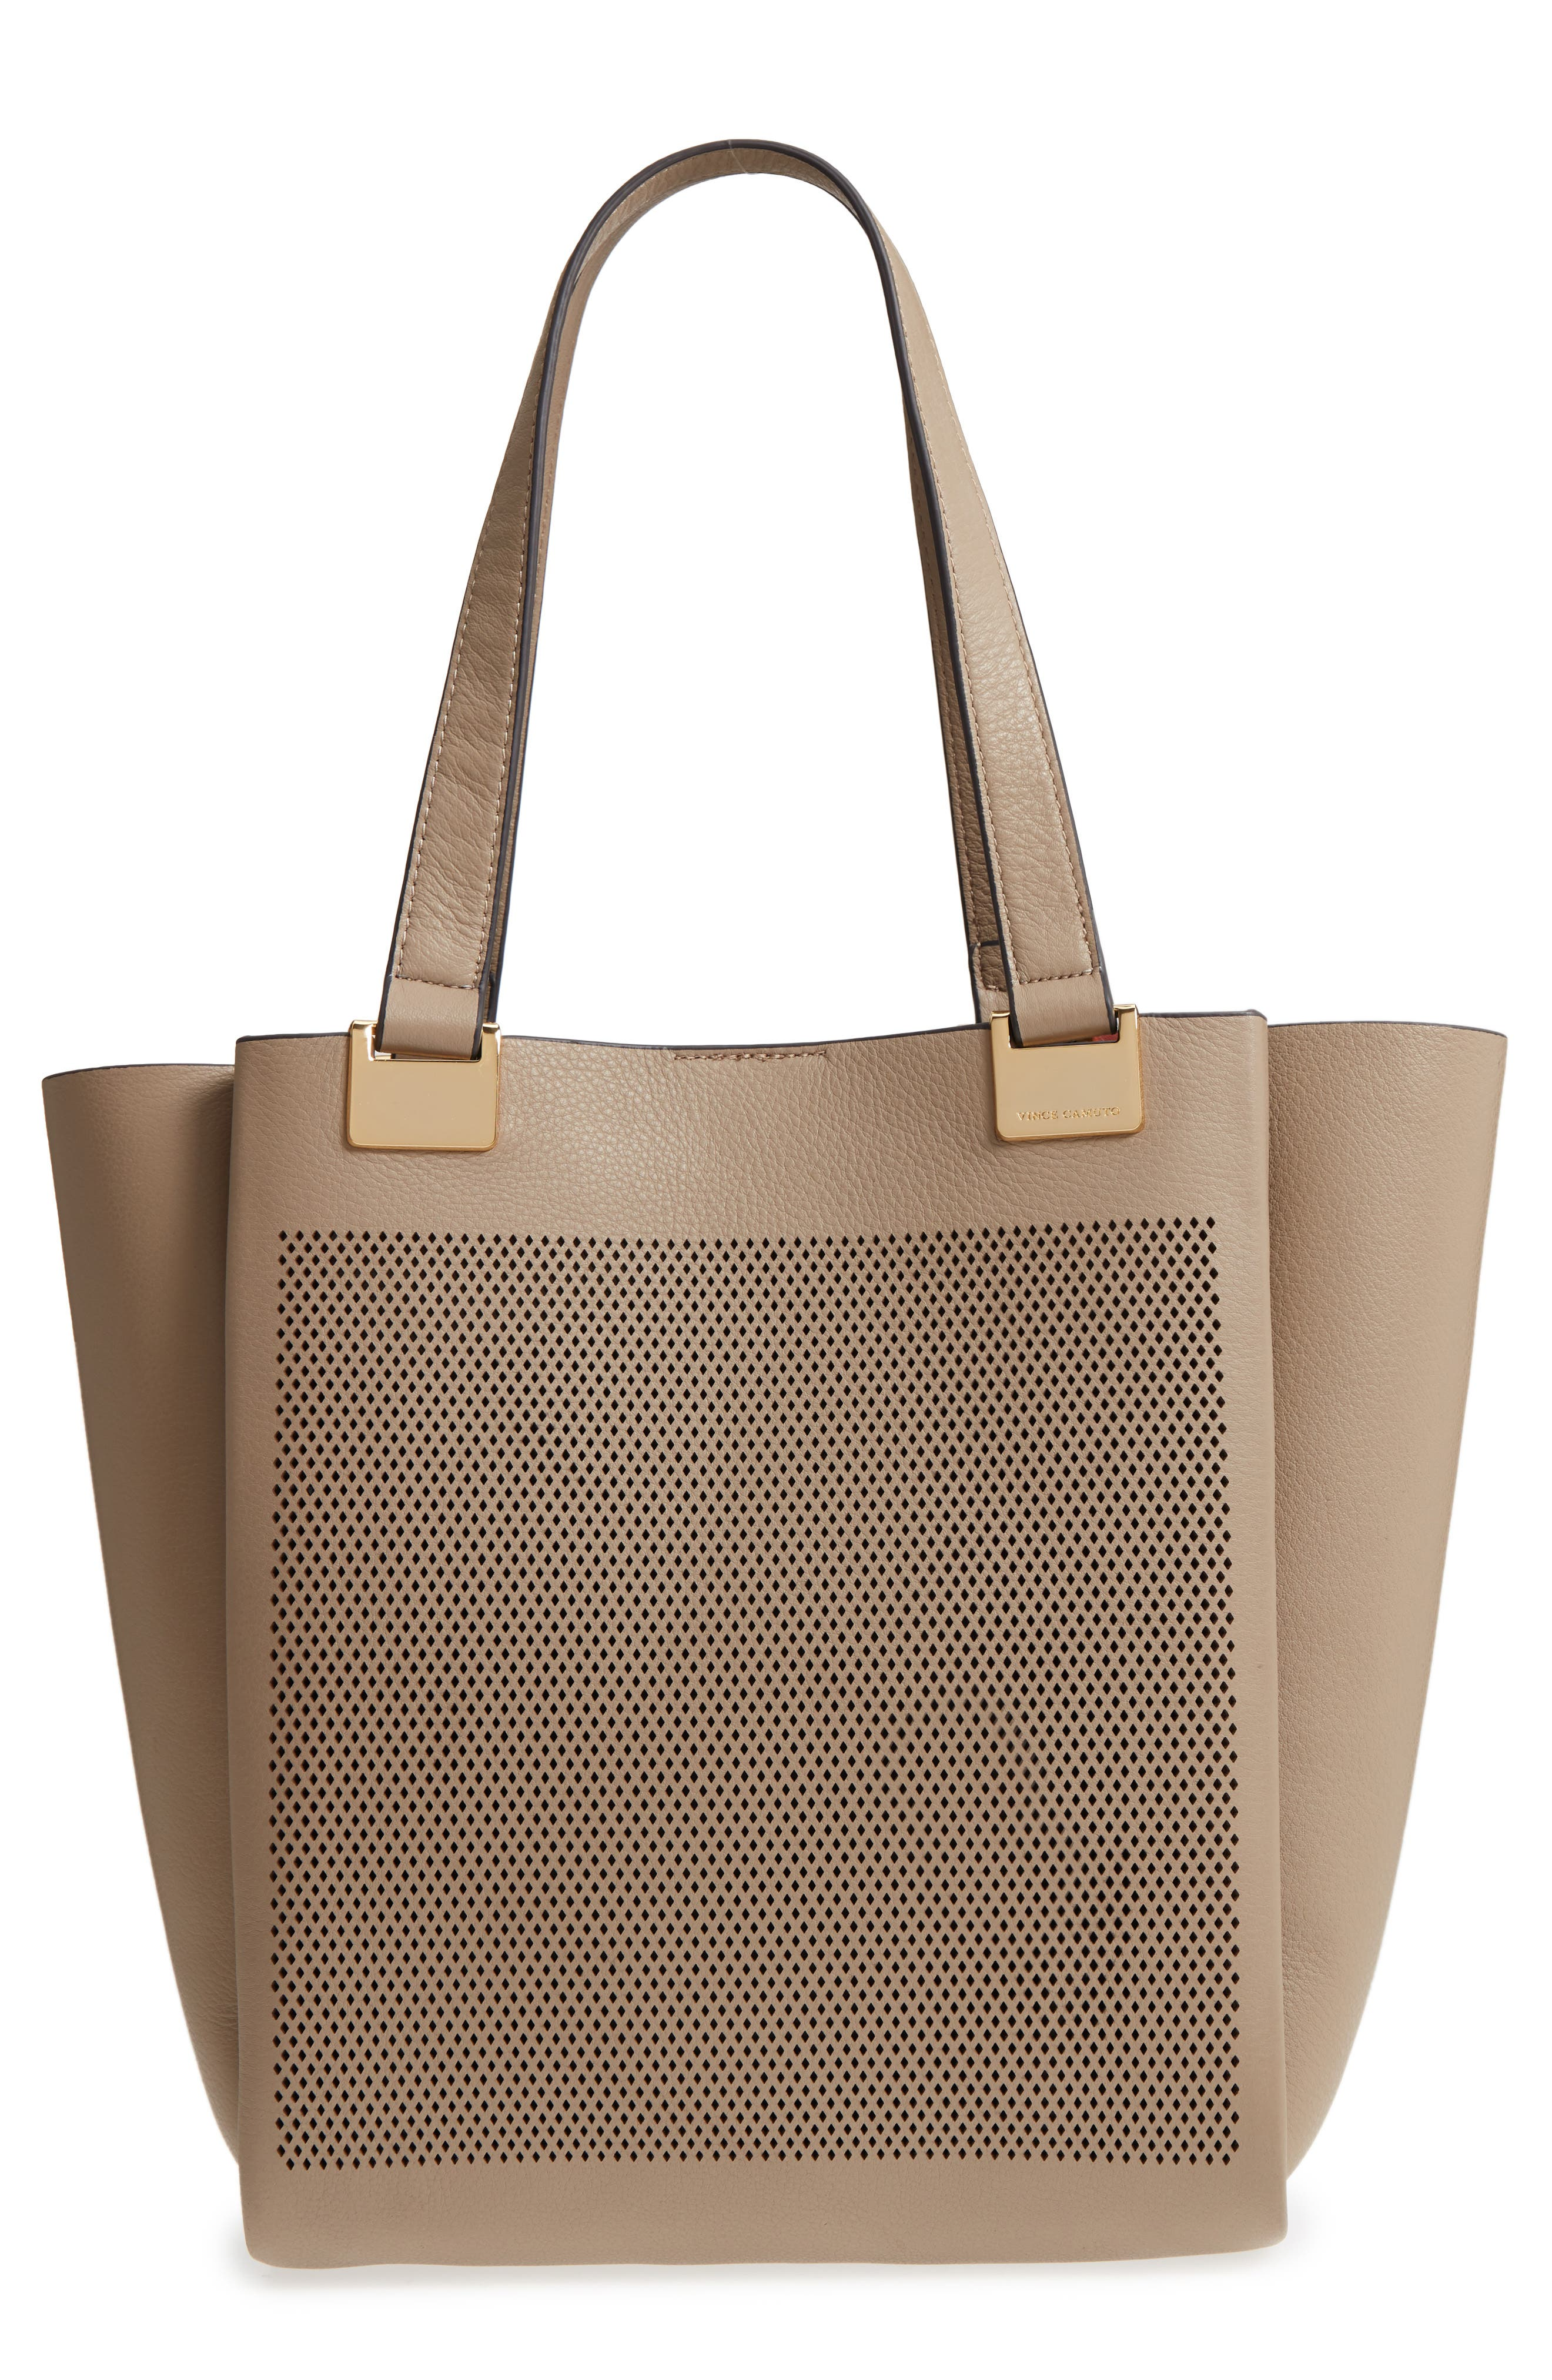 Beatt Perforated Leather Tote,                         Main,                         color, Kangaroo/ Sushi